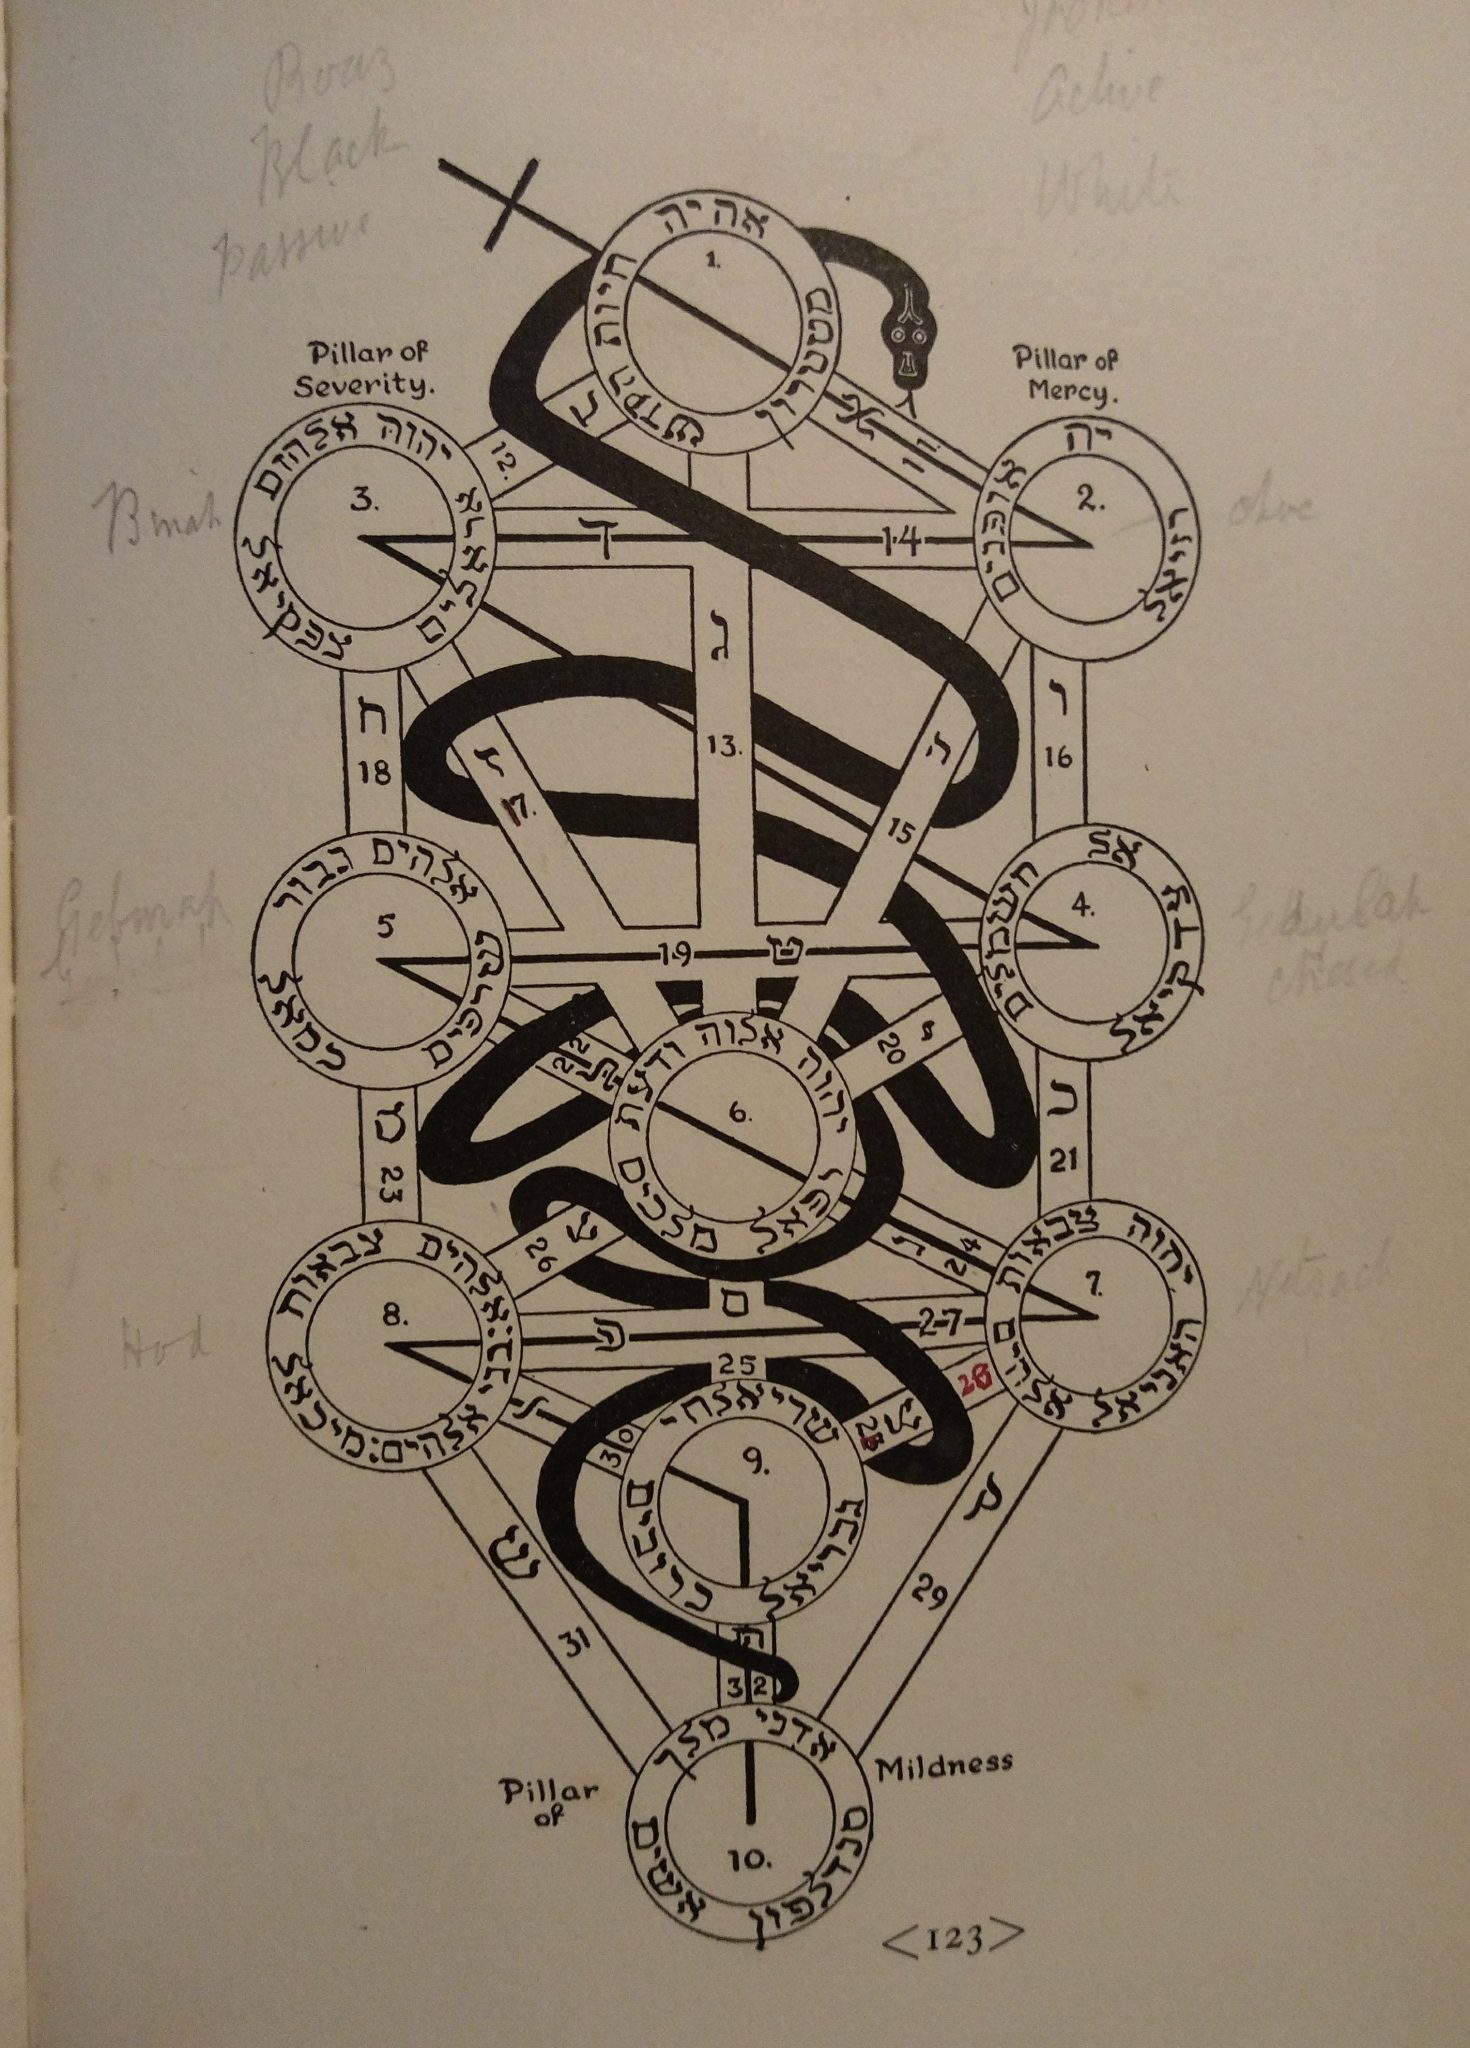 3910 Alpha Omega Tracing Board Diagram Flaming Sword With Serpent Museum Of Witchcraft And Magic Like god, the tree is omnipresent the study of kabbalah and the tree of life is ancient. alpha omega tracing board diagram